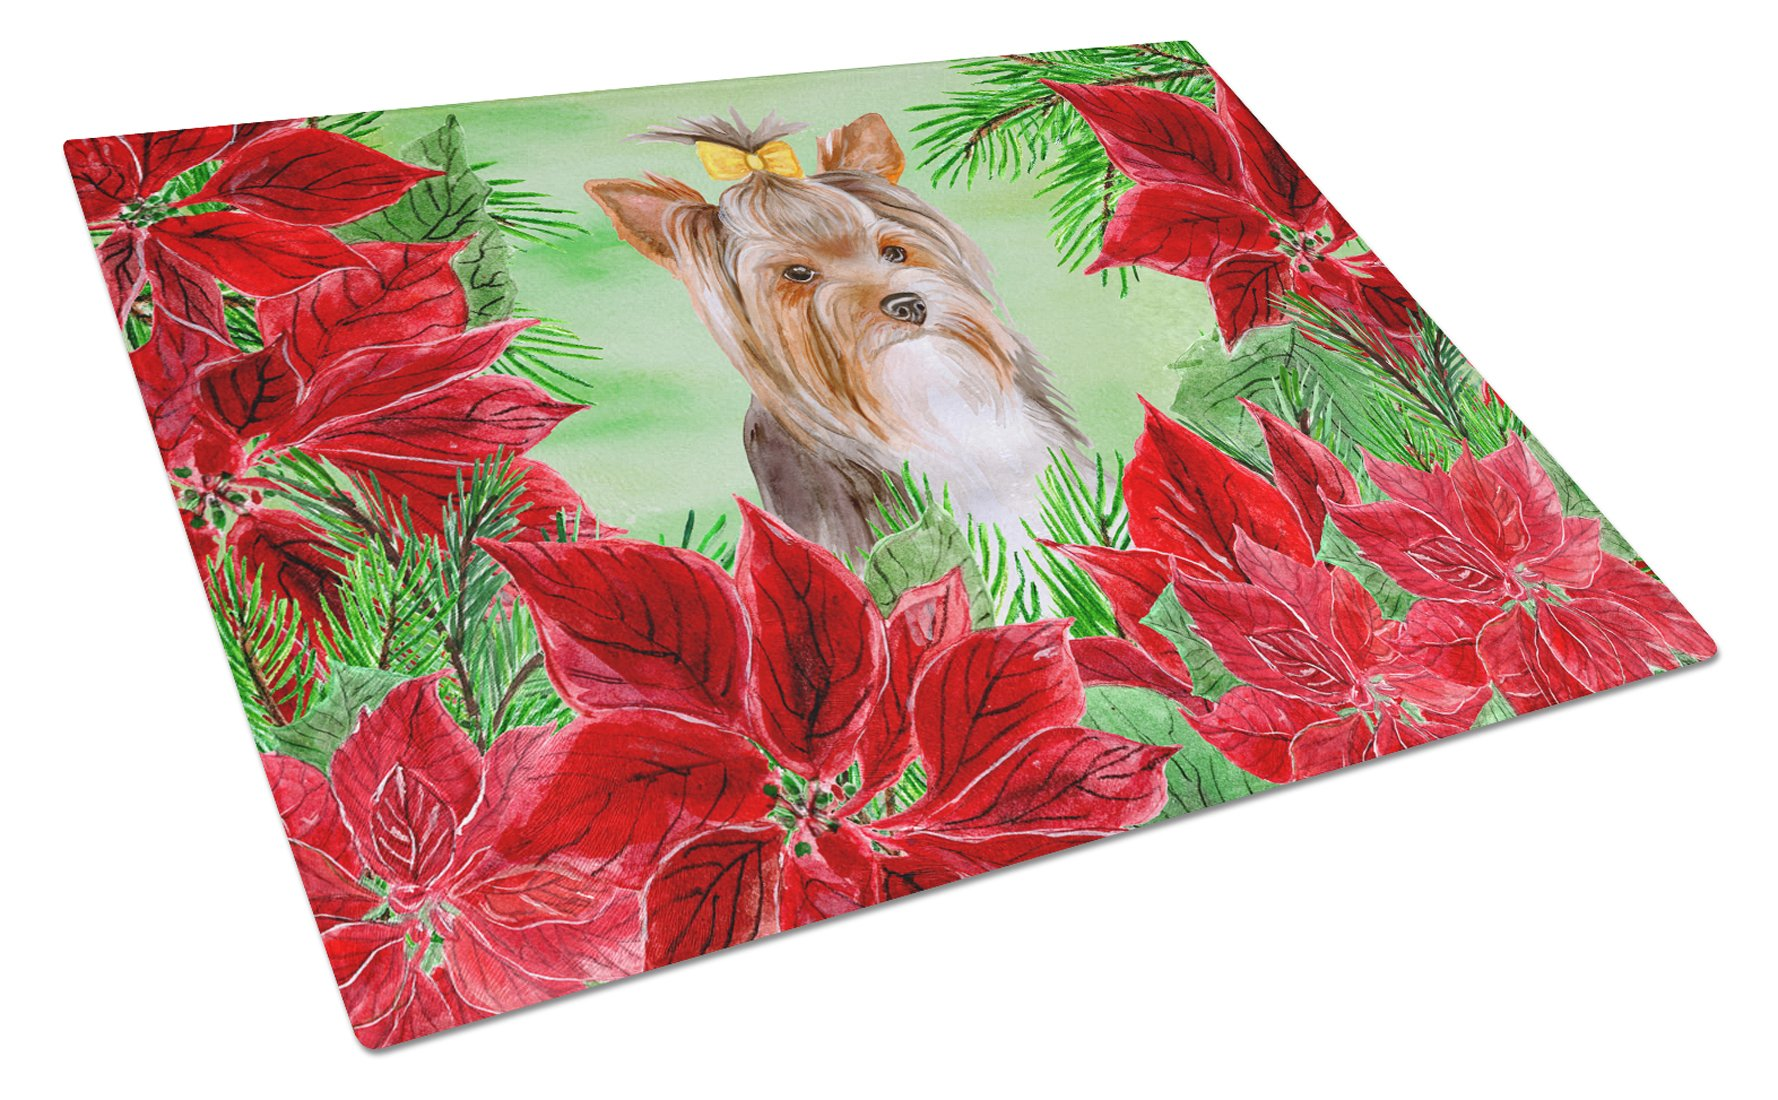 Yorkshire Terrier #2 Poinsettas Glass Cutting Board Large CK1370LCB by Caroline's Treasures